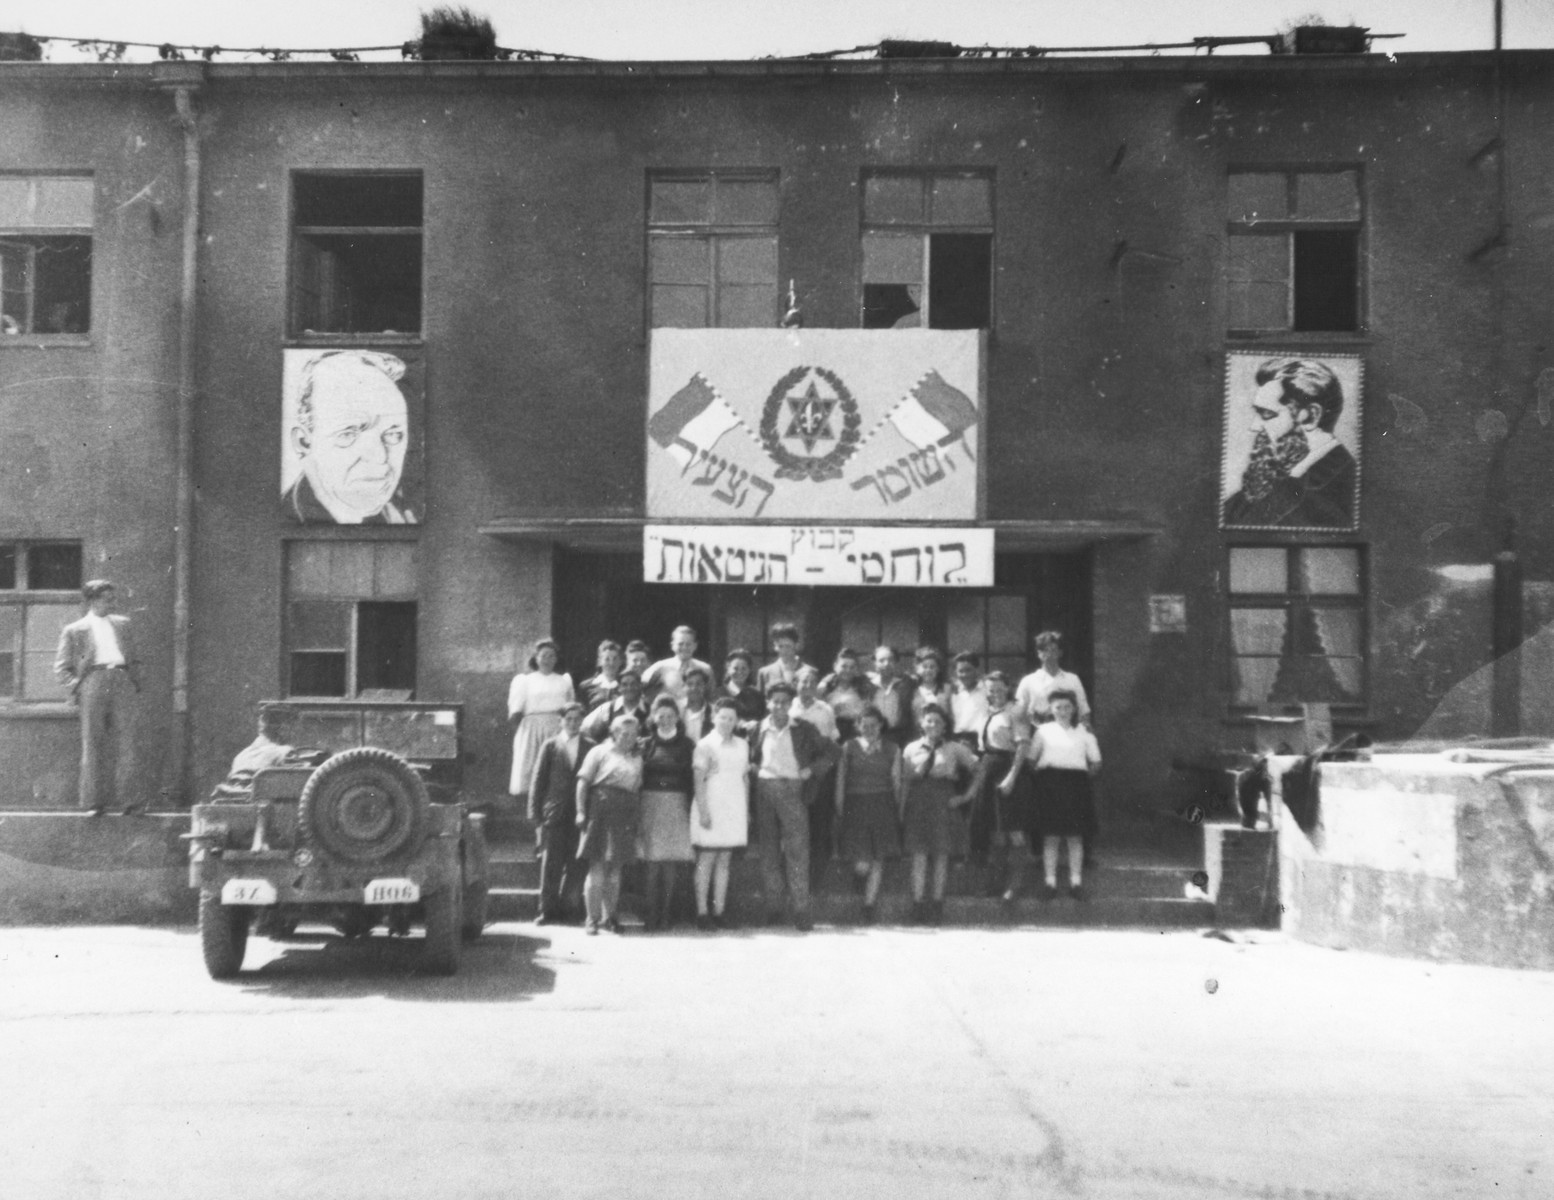 "Members of Kibbutz Lochamei HaGhettaot (Ghetto Fighters) pose outside their headquarters in Berlin beneath two Hebrew banners that read: ""Hashomer Hatzair"" and ""Kibbutz Lochamei HaGhettaot"" and large portraits of Theodor Herzl and Chaim Nachman Bialik."